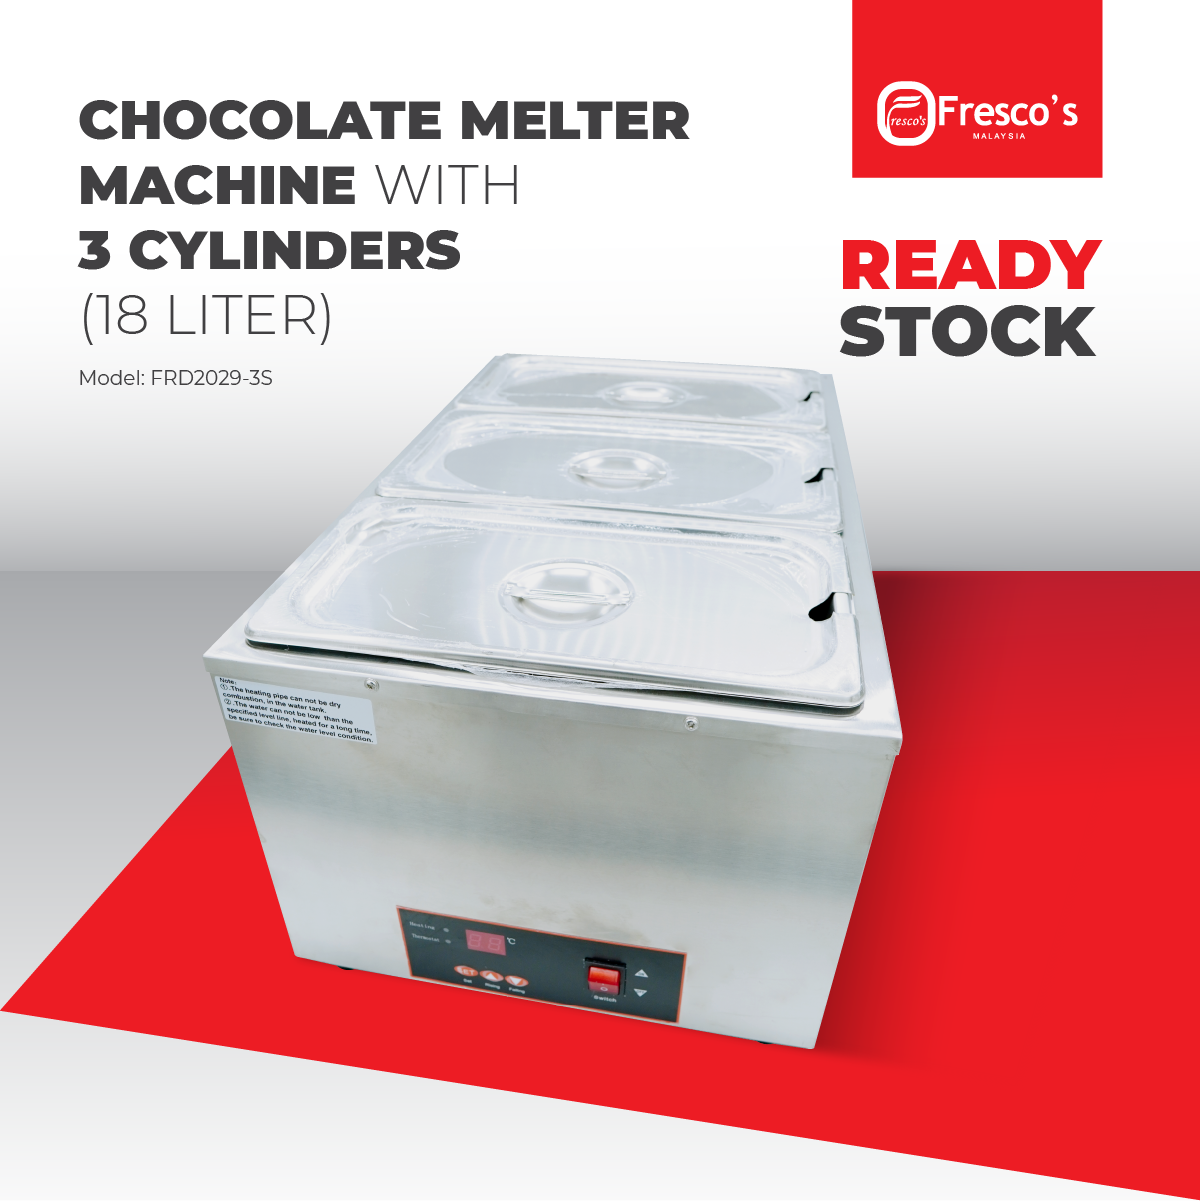 Chocolate Melter Machine With 3 Cylinders (18 Liter)